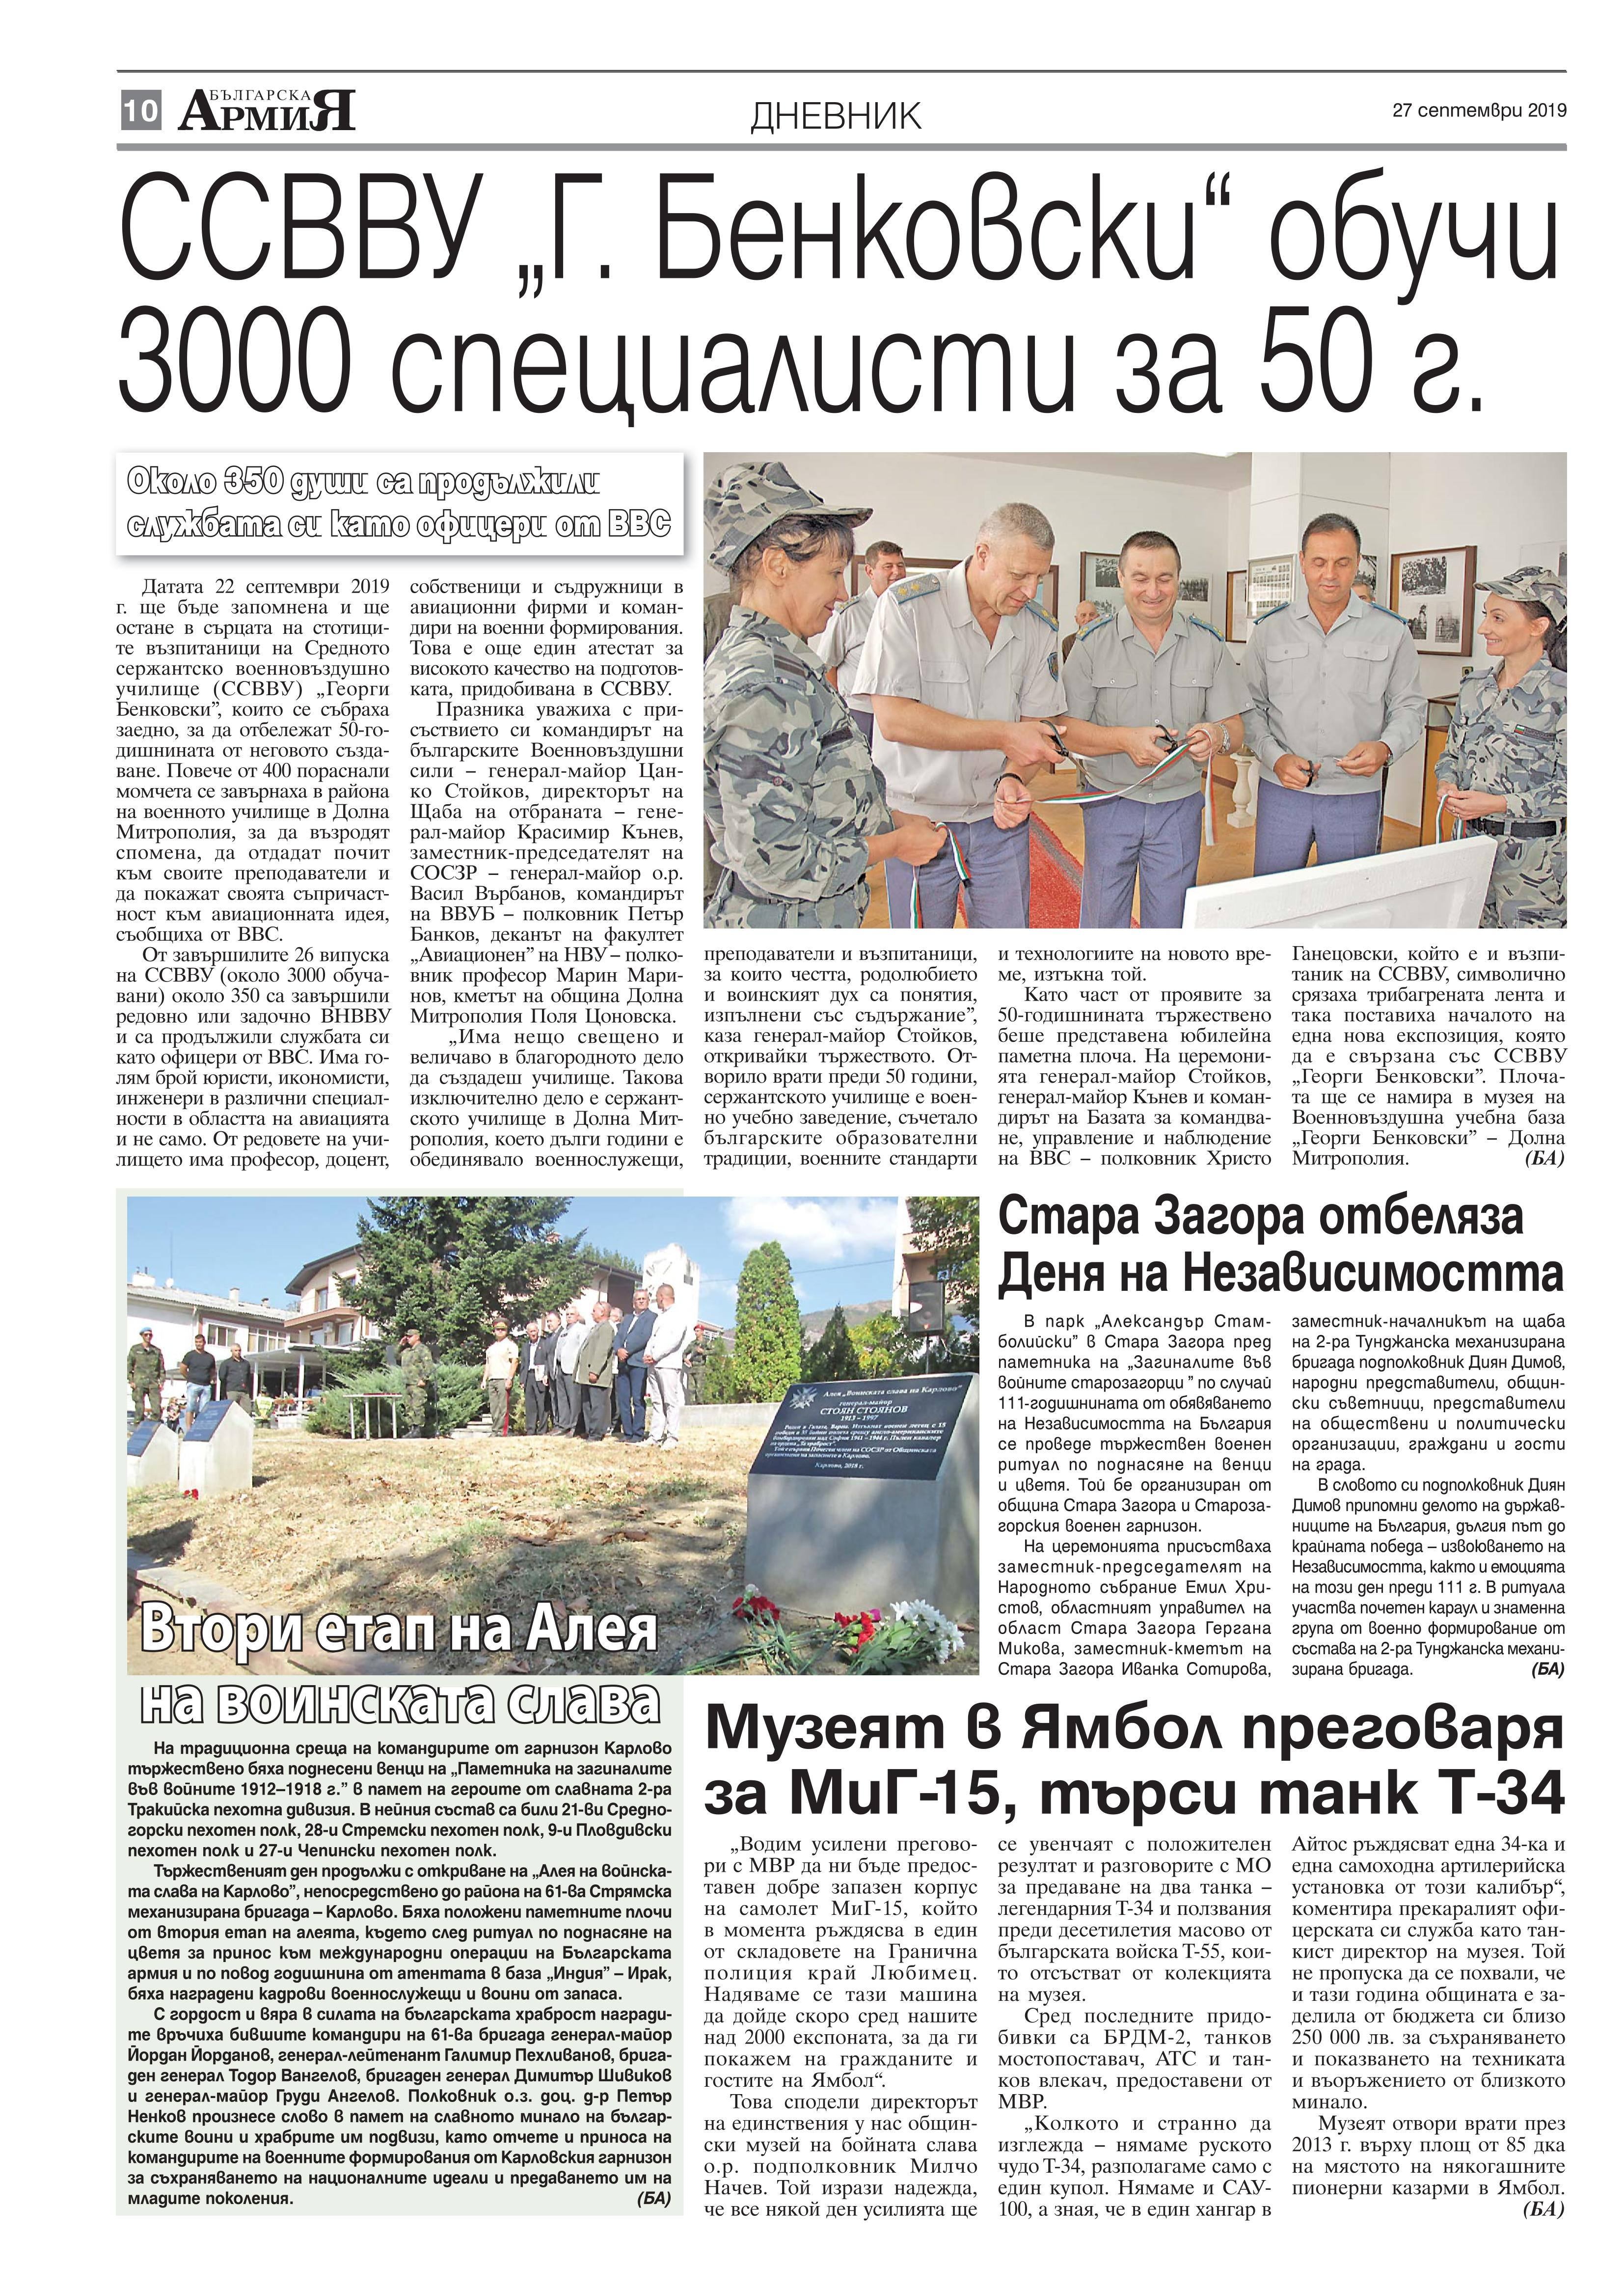 https://www.armymedia.bg/wp-content/uploads/2015/06/10.page1_-110.jpg